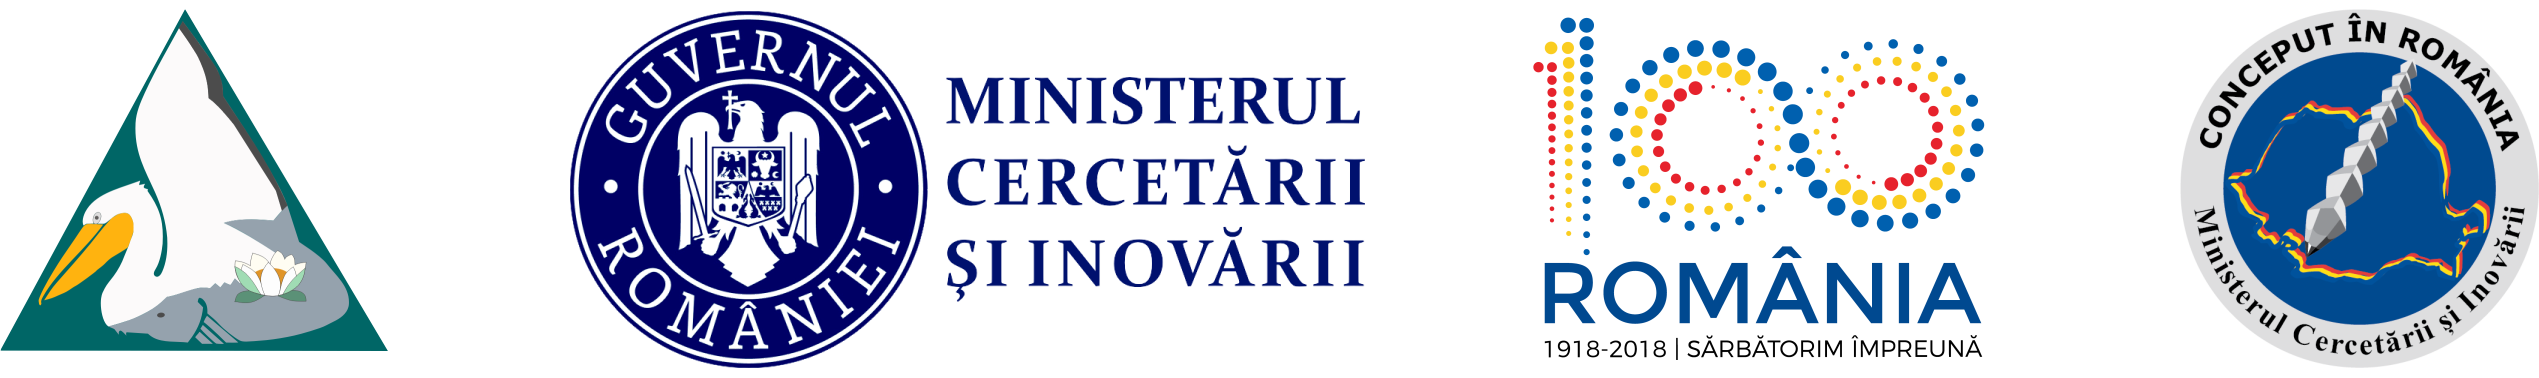 Danube Delta National R&D Institute